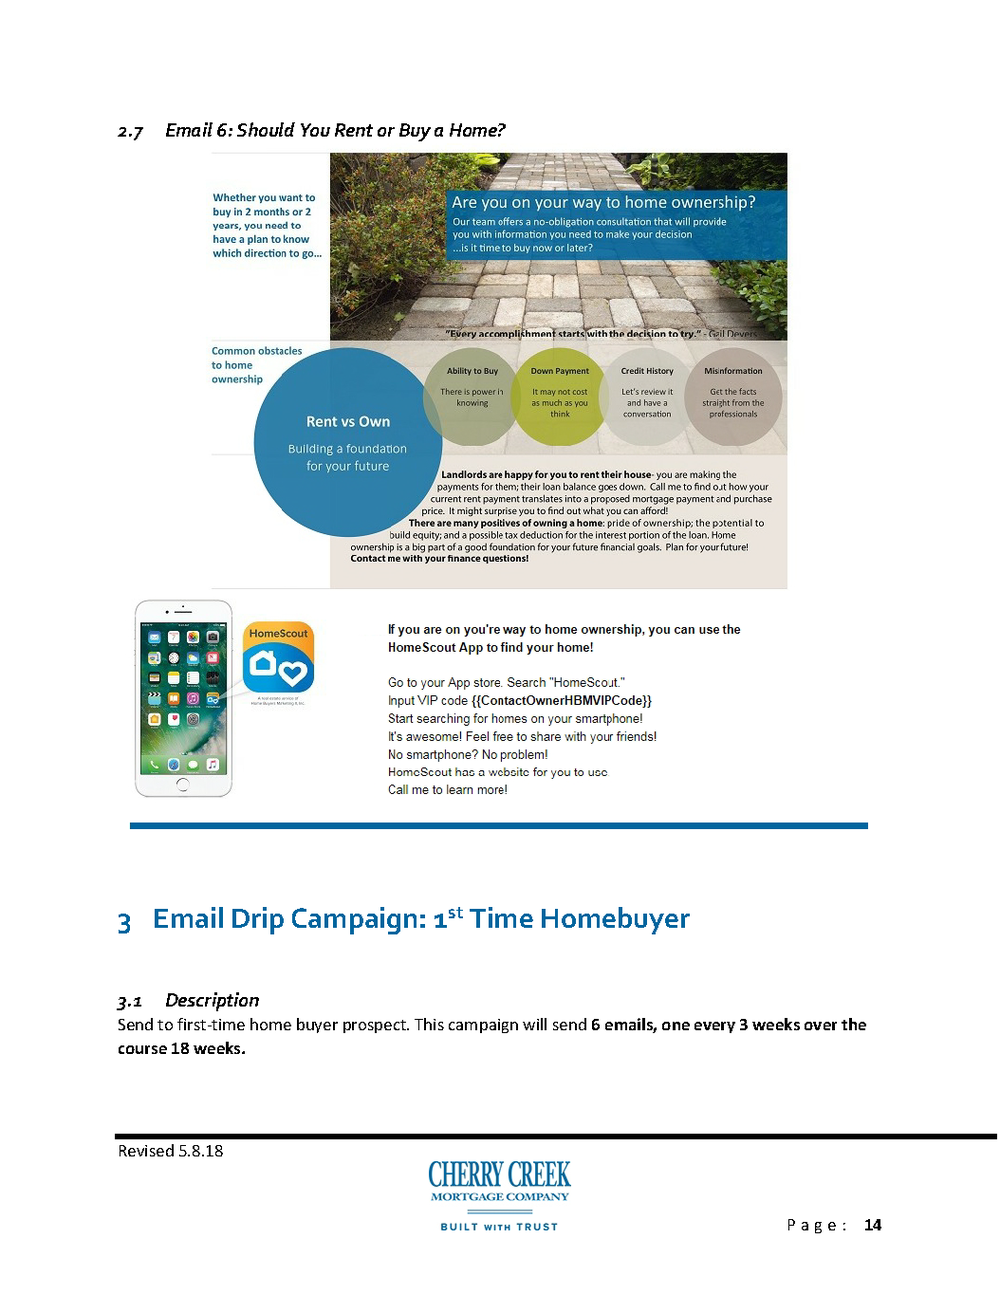 Jungo_Email_Drip_Campaigns-Consumers_D1O6plI_Page_014.png